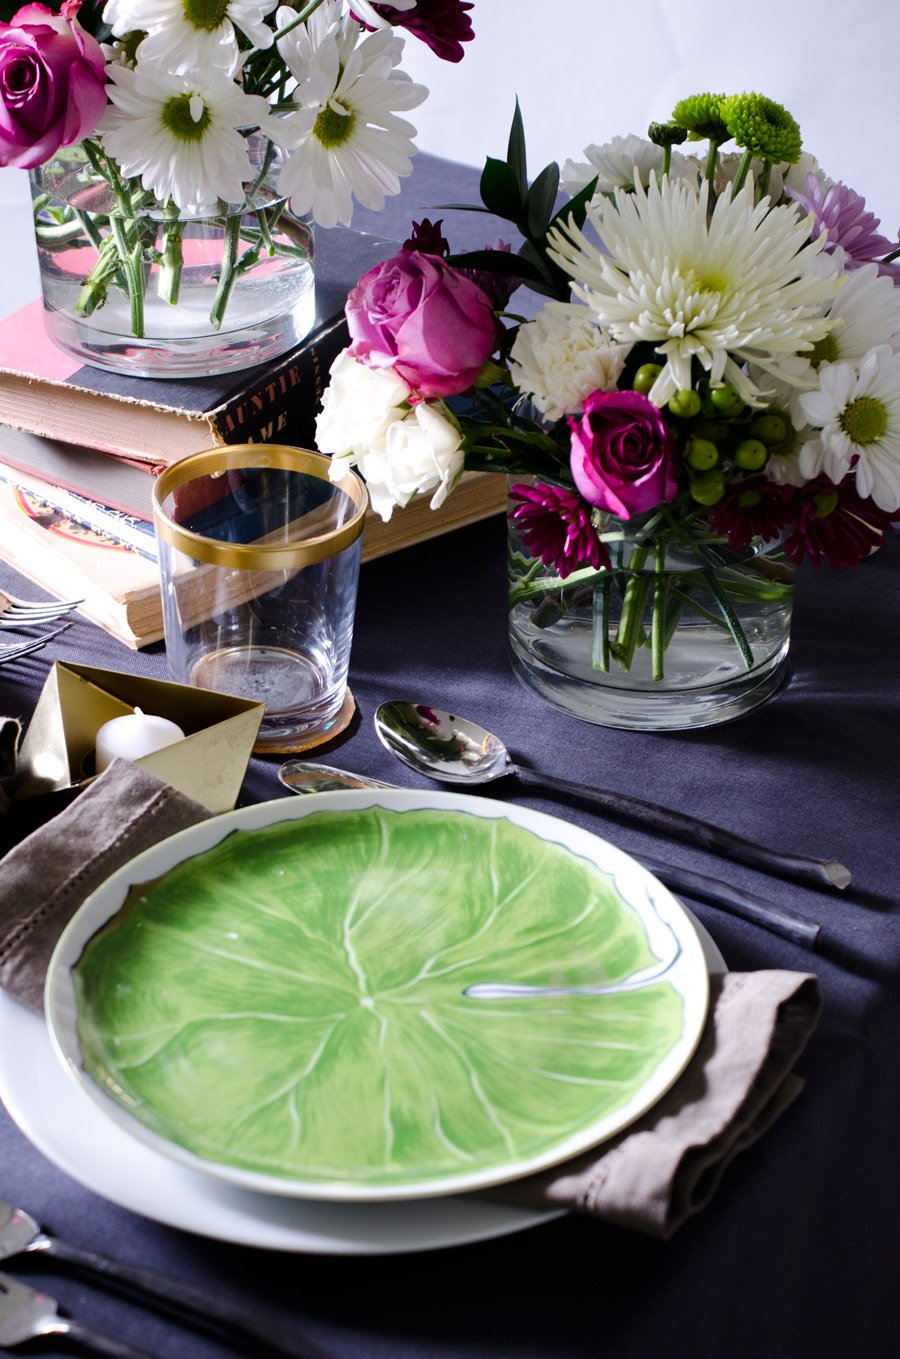 MODERN & ROMANTIC VALENTINE'S DAY TABLE | Thou Swell http://thouswell.co/modern-romantic-valentines-day-table